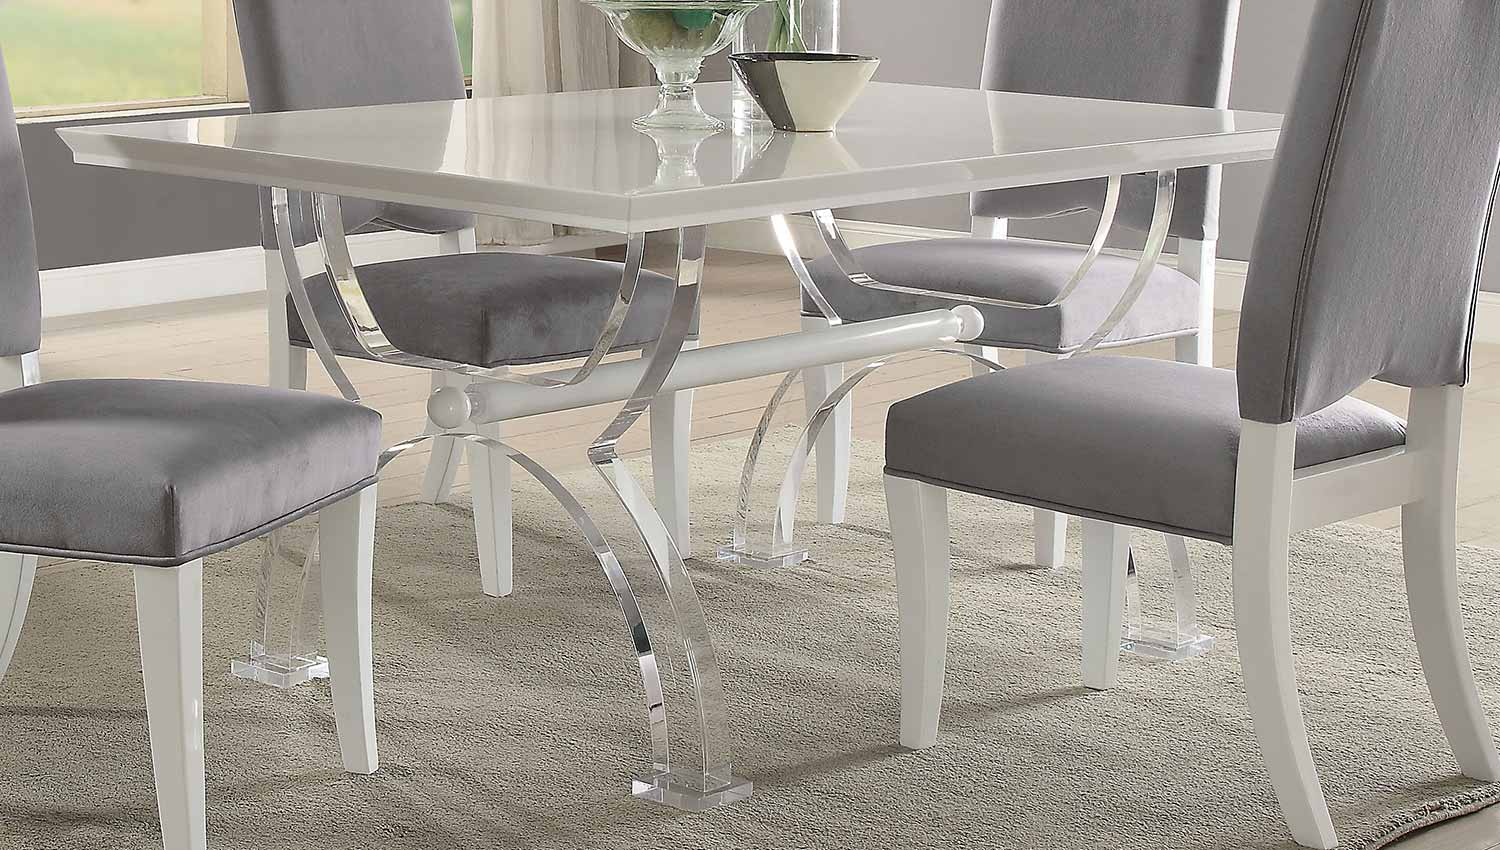 Acme Martinus Dining Table - High Gloss White/Clear Acrylic